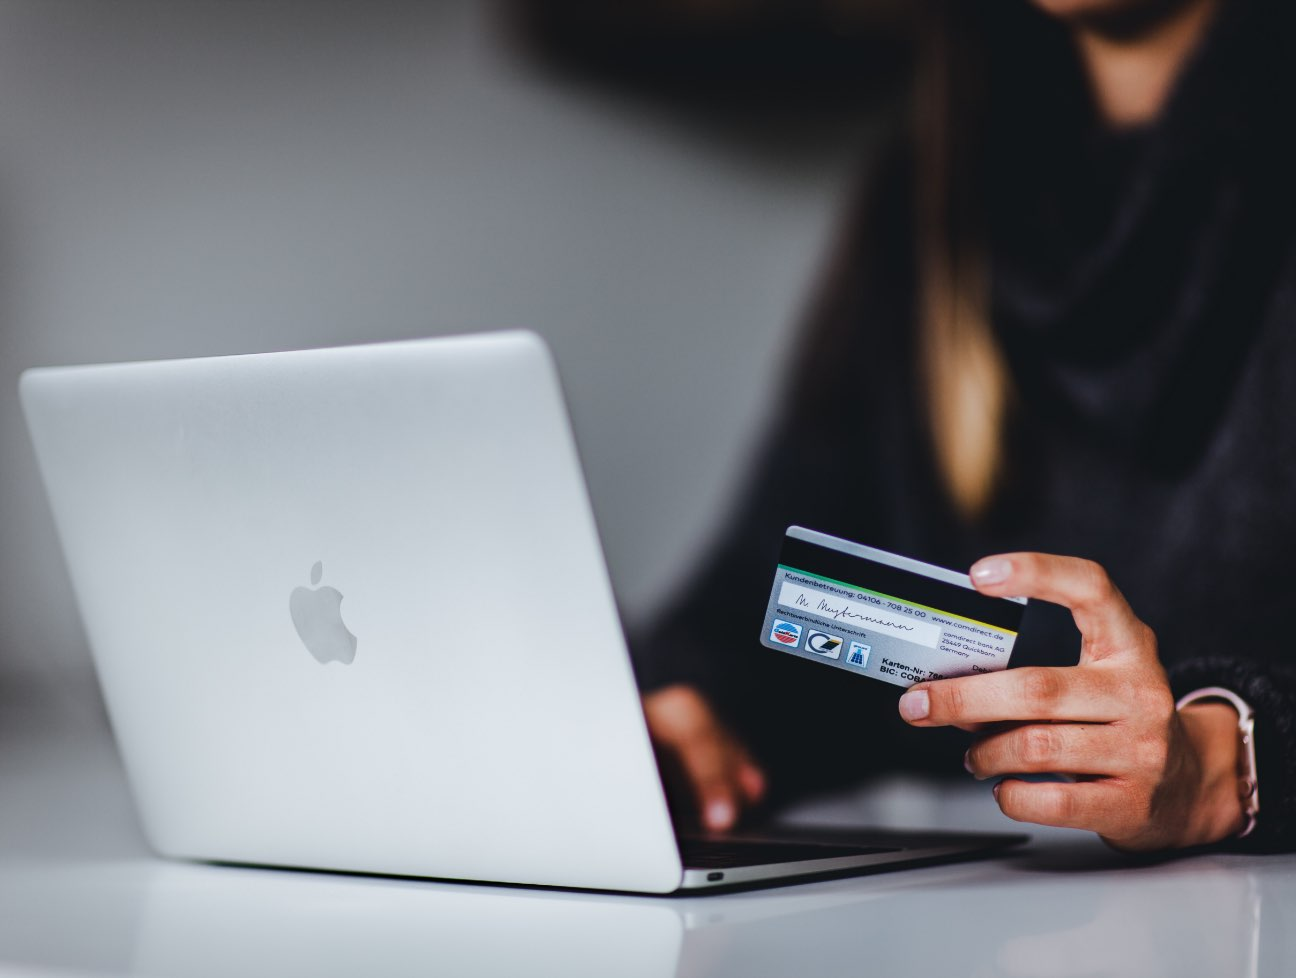 Hand holding credit card in front of laptop